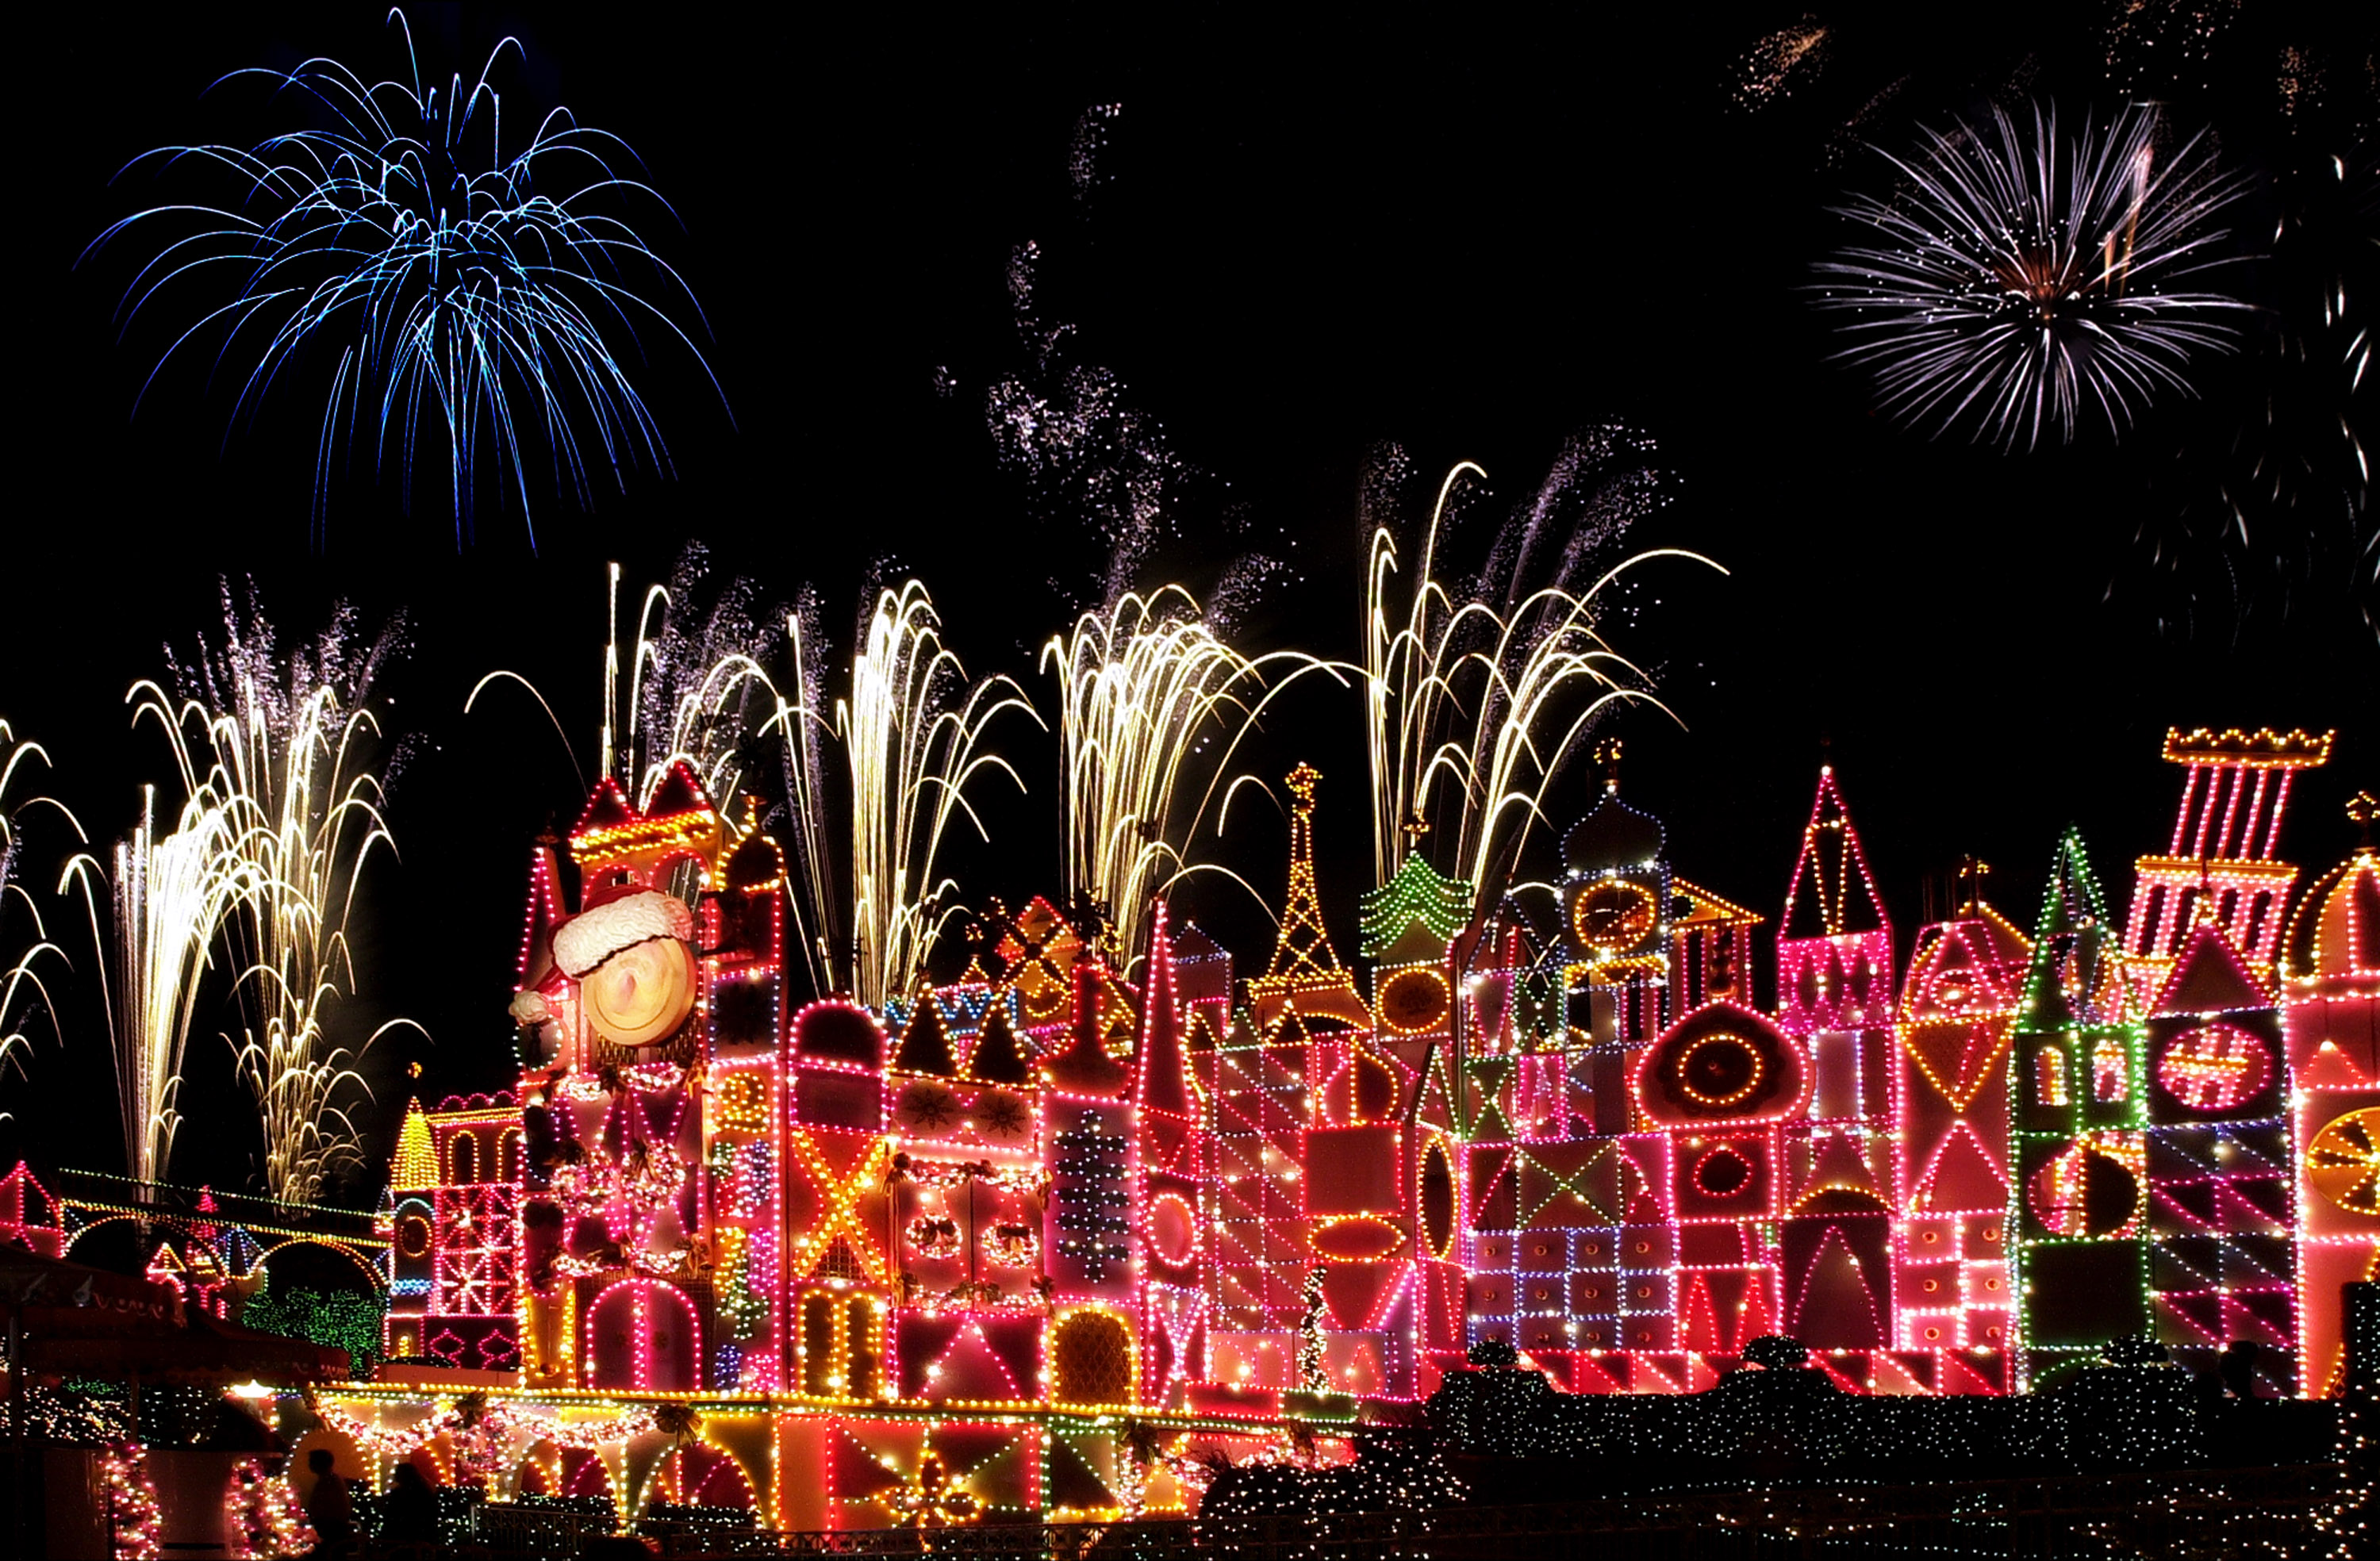 8 Must Dos for Those Visiting Disneyland This Holiday Season